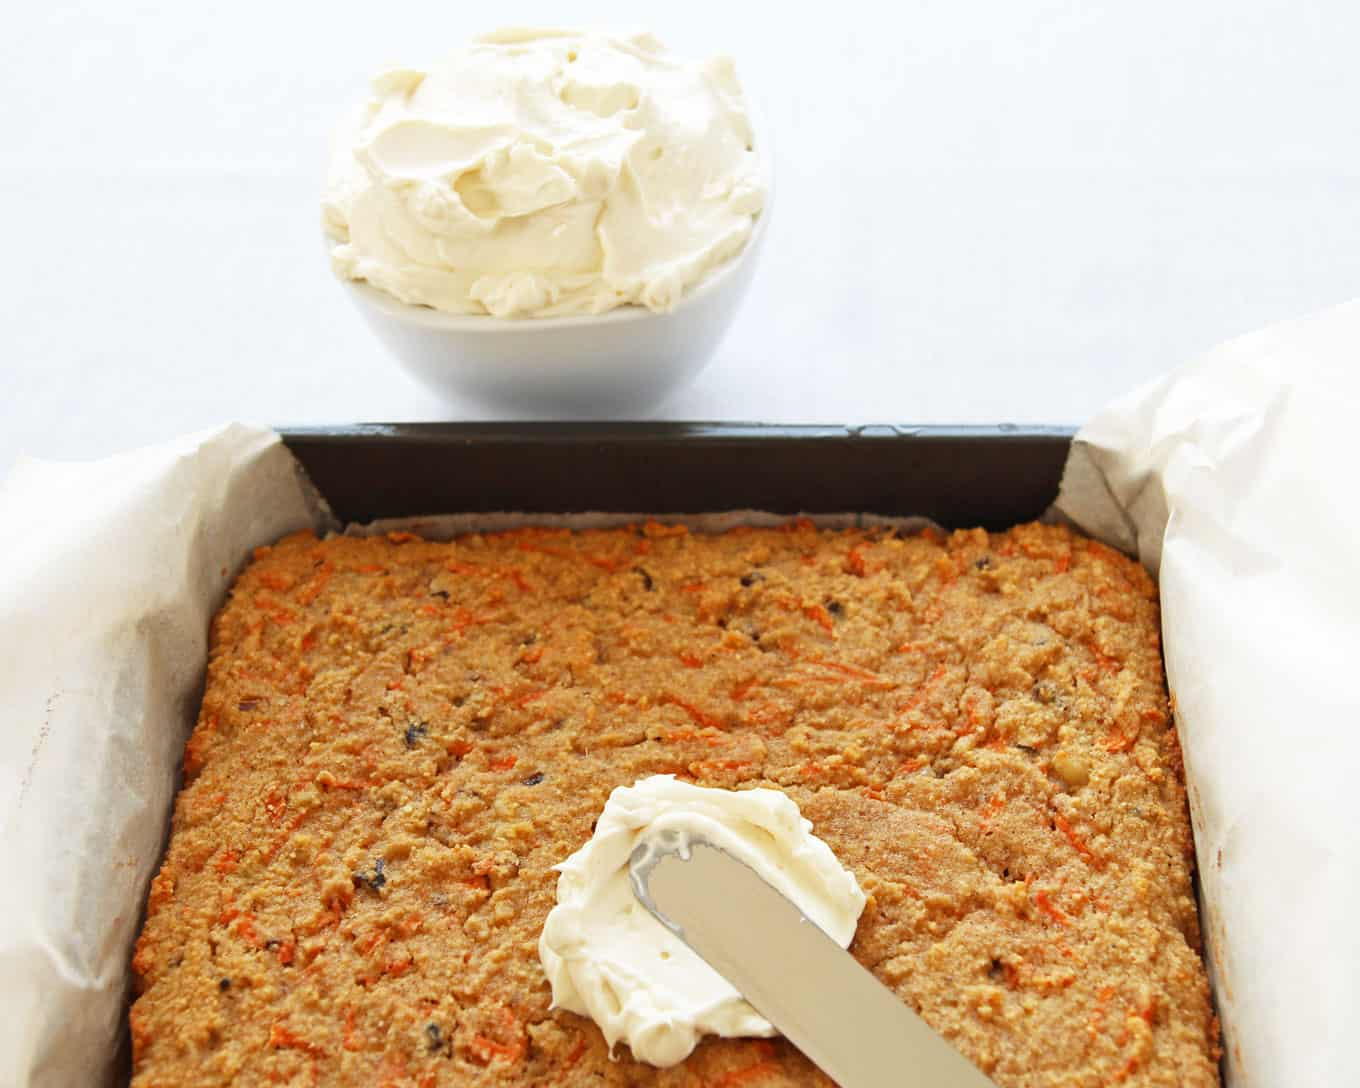 Healthy Frosting on Carrot Cake